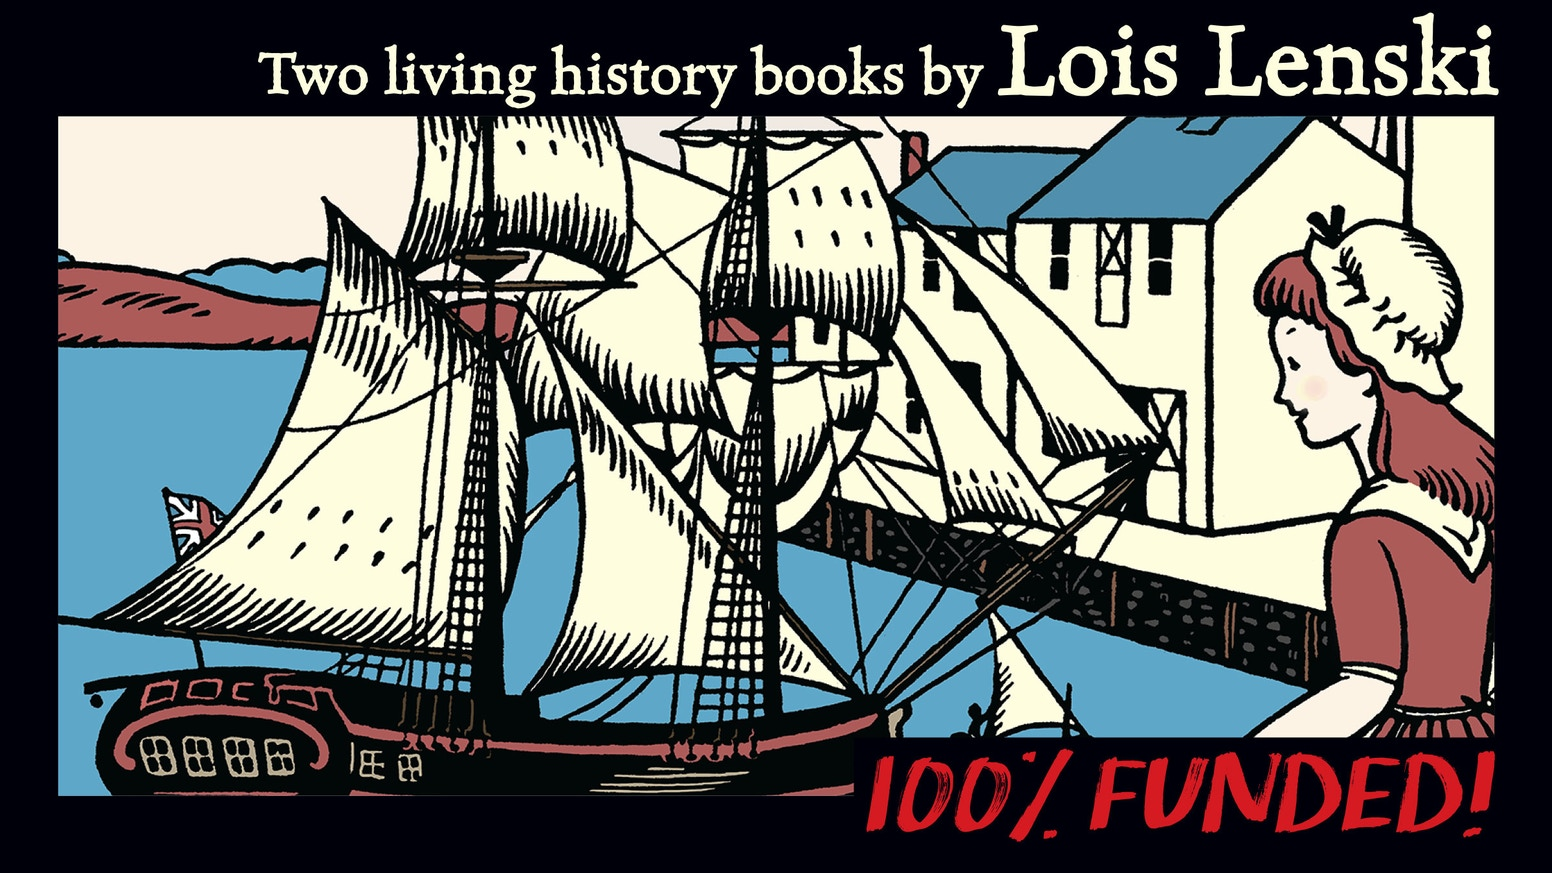 Living history books, in heirloom quality hardcover editions, by award-winning author Lois Lenski